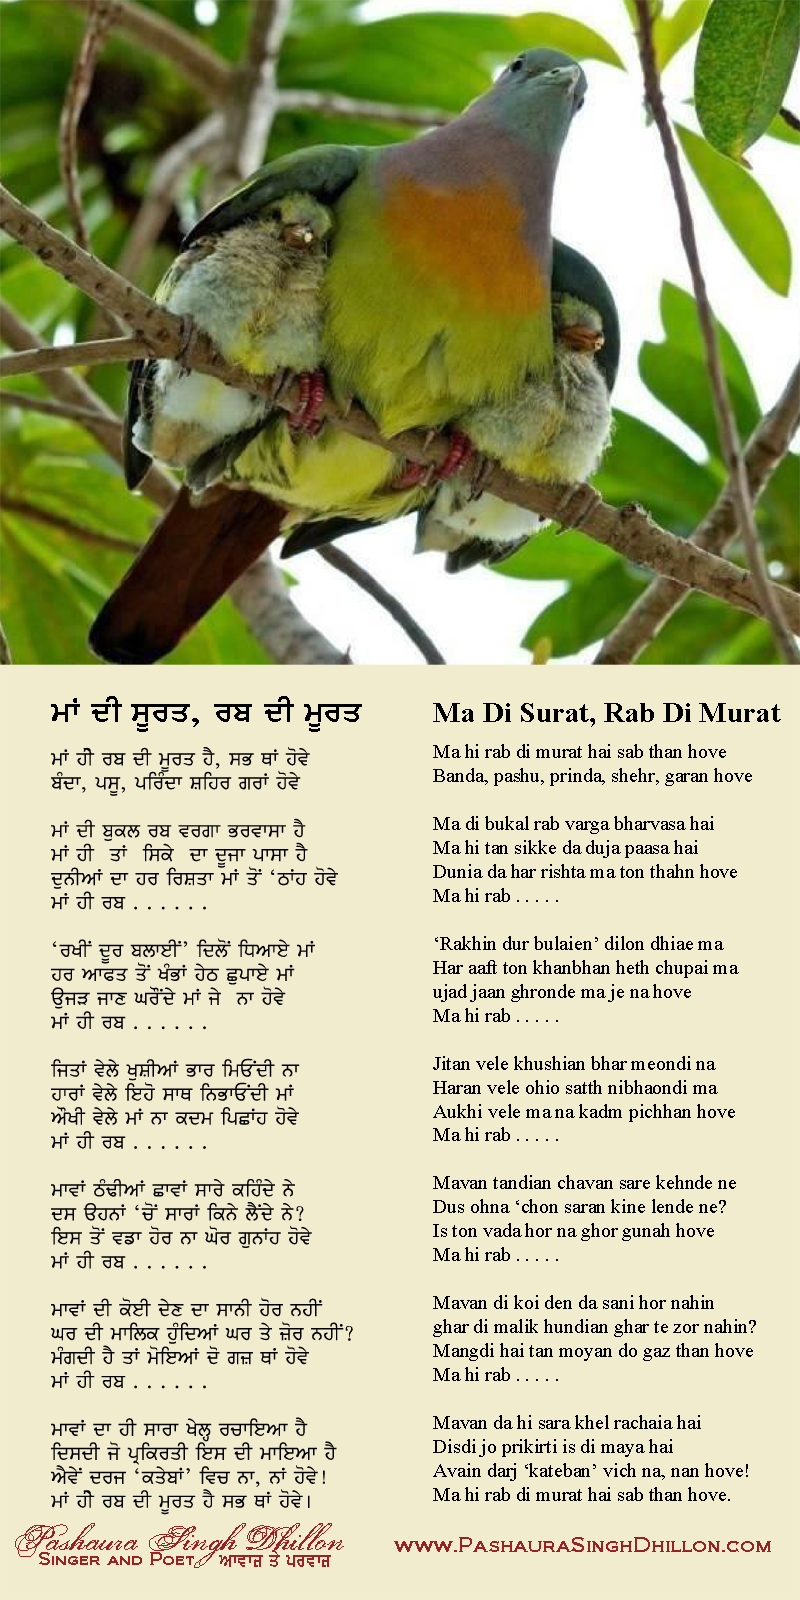 Ma Di Surat, Rab Di Murat: Punjabi Poem for Mother's Day by Pashaura Singh Dhillon